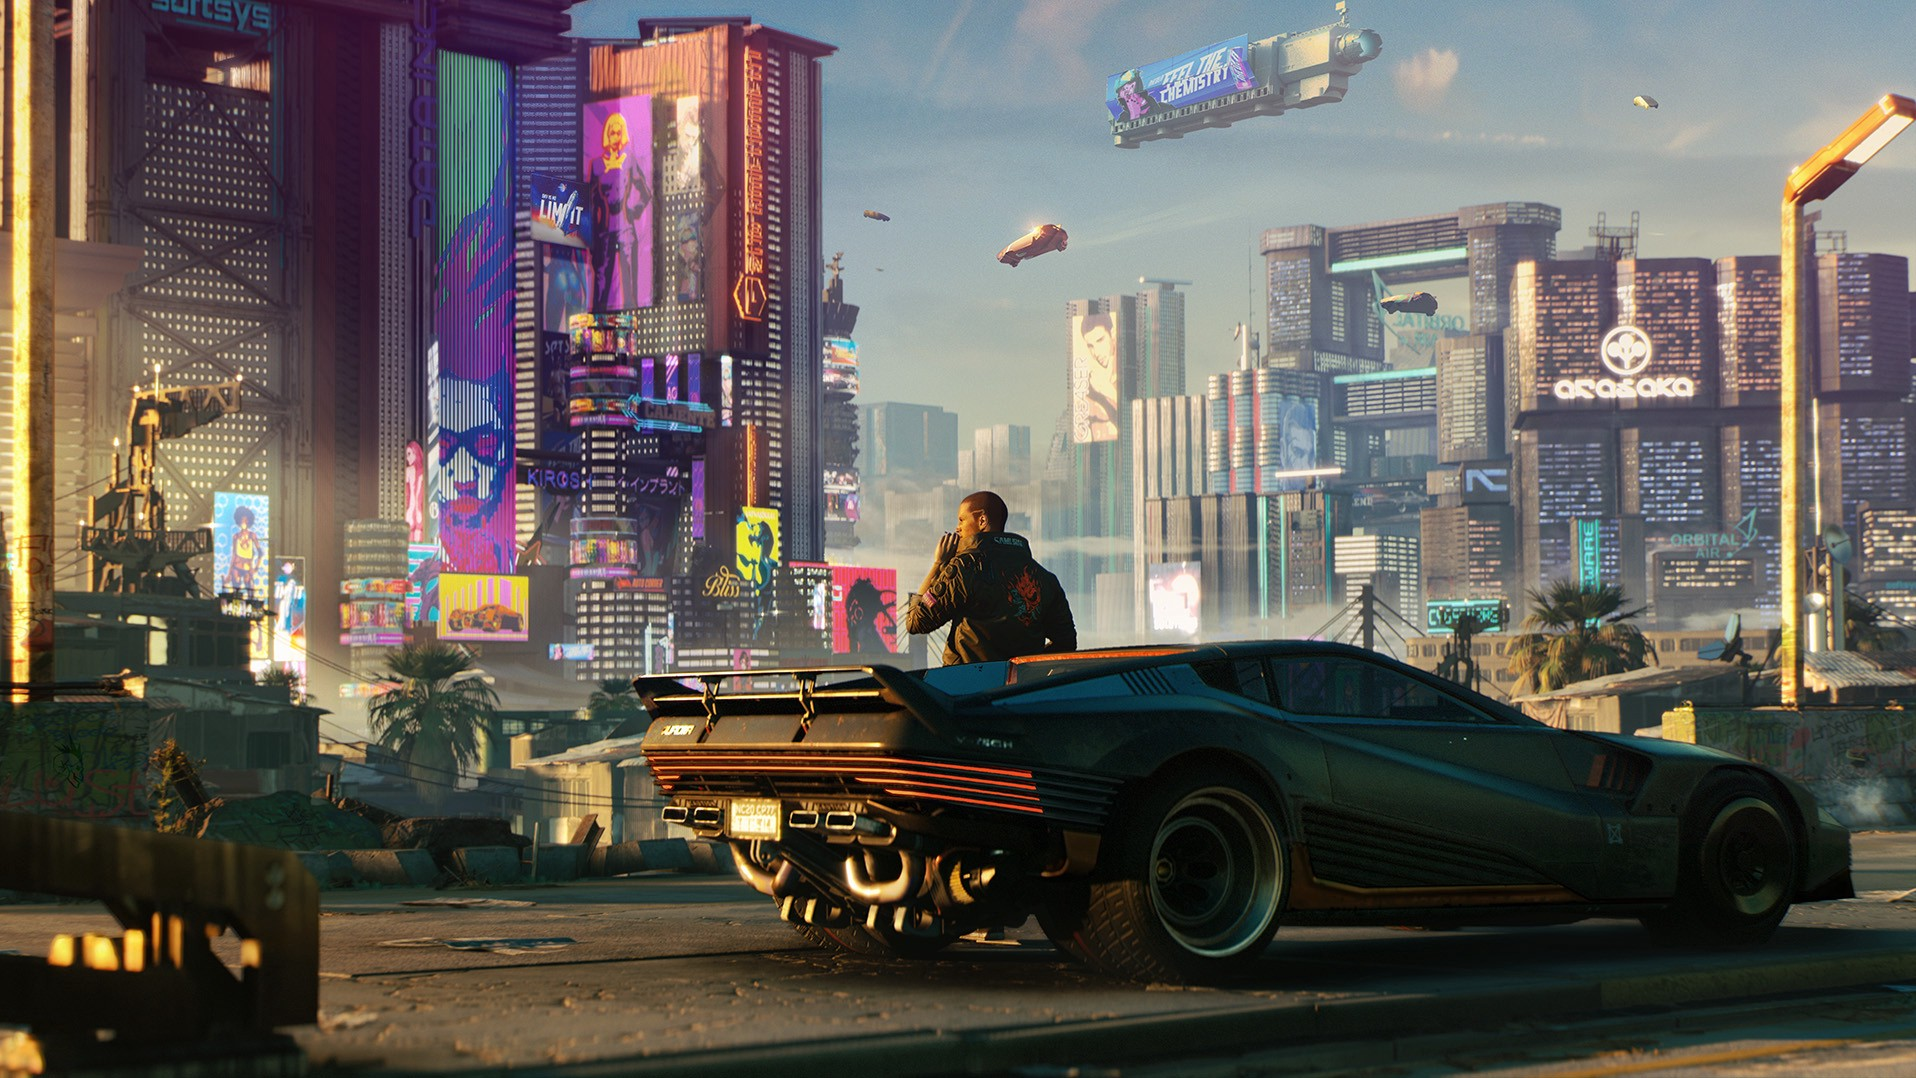 Cityscape of Cyberpunk's Night City. Main character leans on car while planes fly overhead.